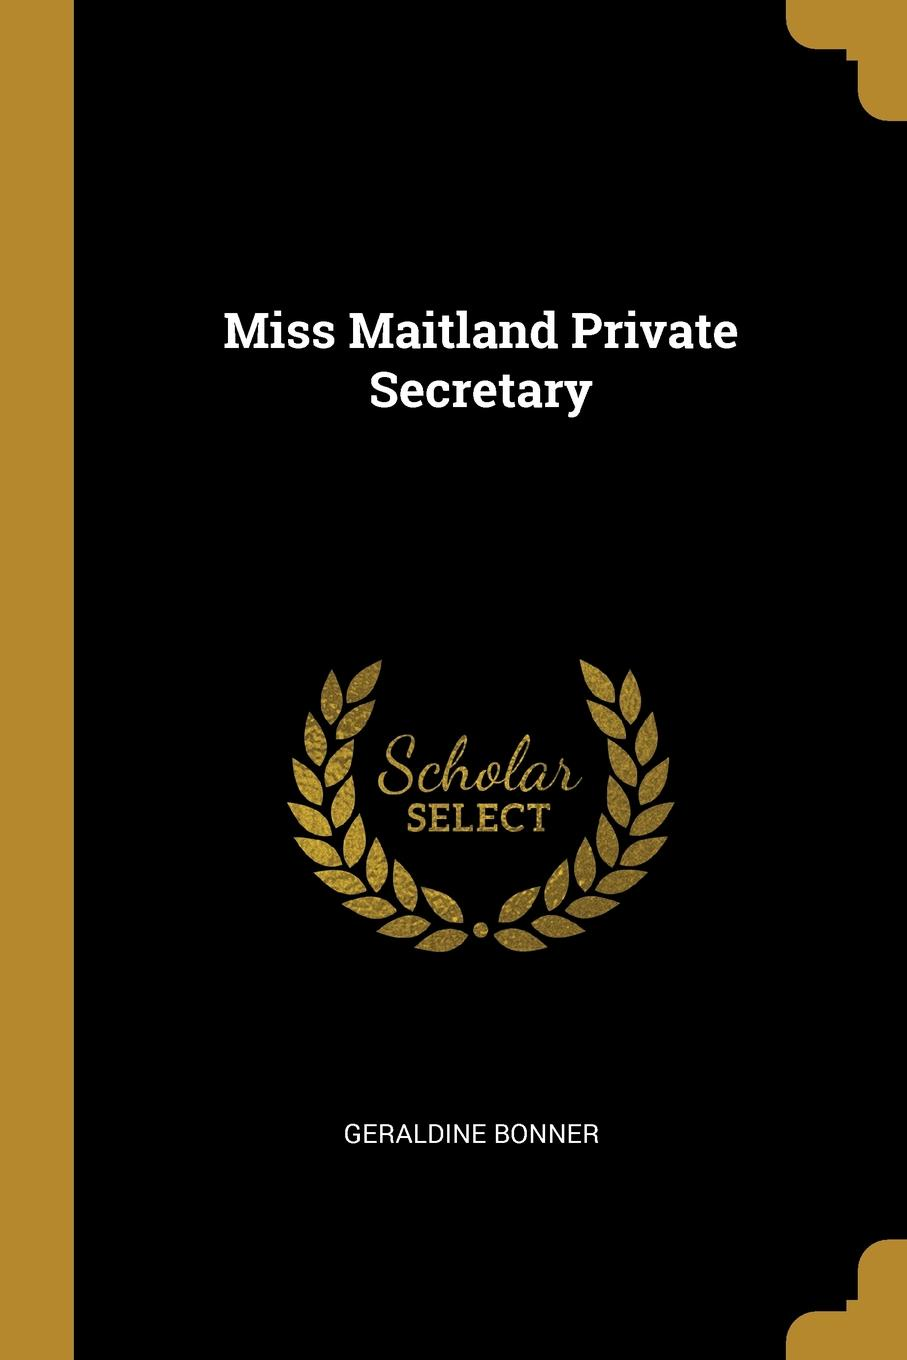 купить Geraldine Bonner Miss Maitland Private Secretary онлайн